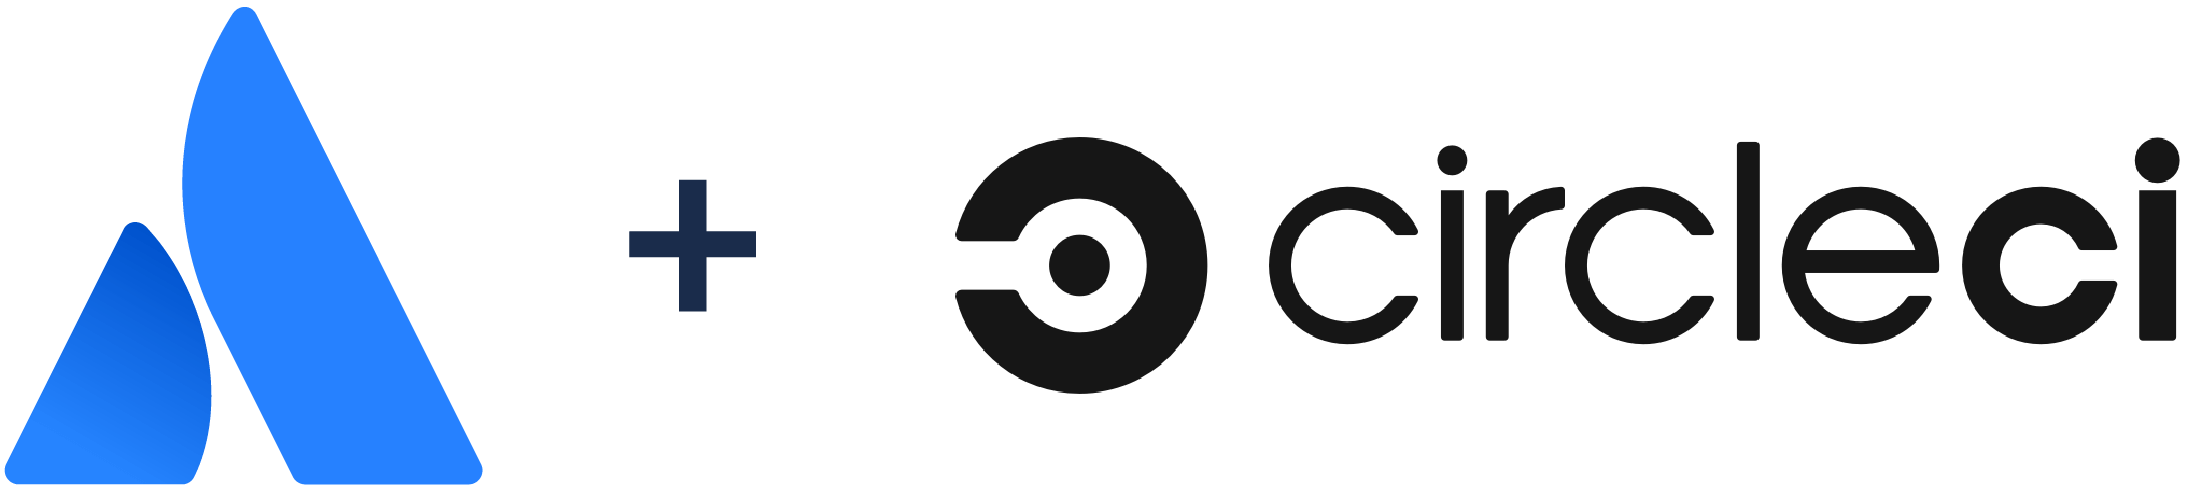 Atlassian-Logo + CircleCI-Logo